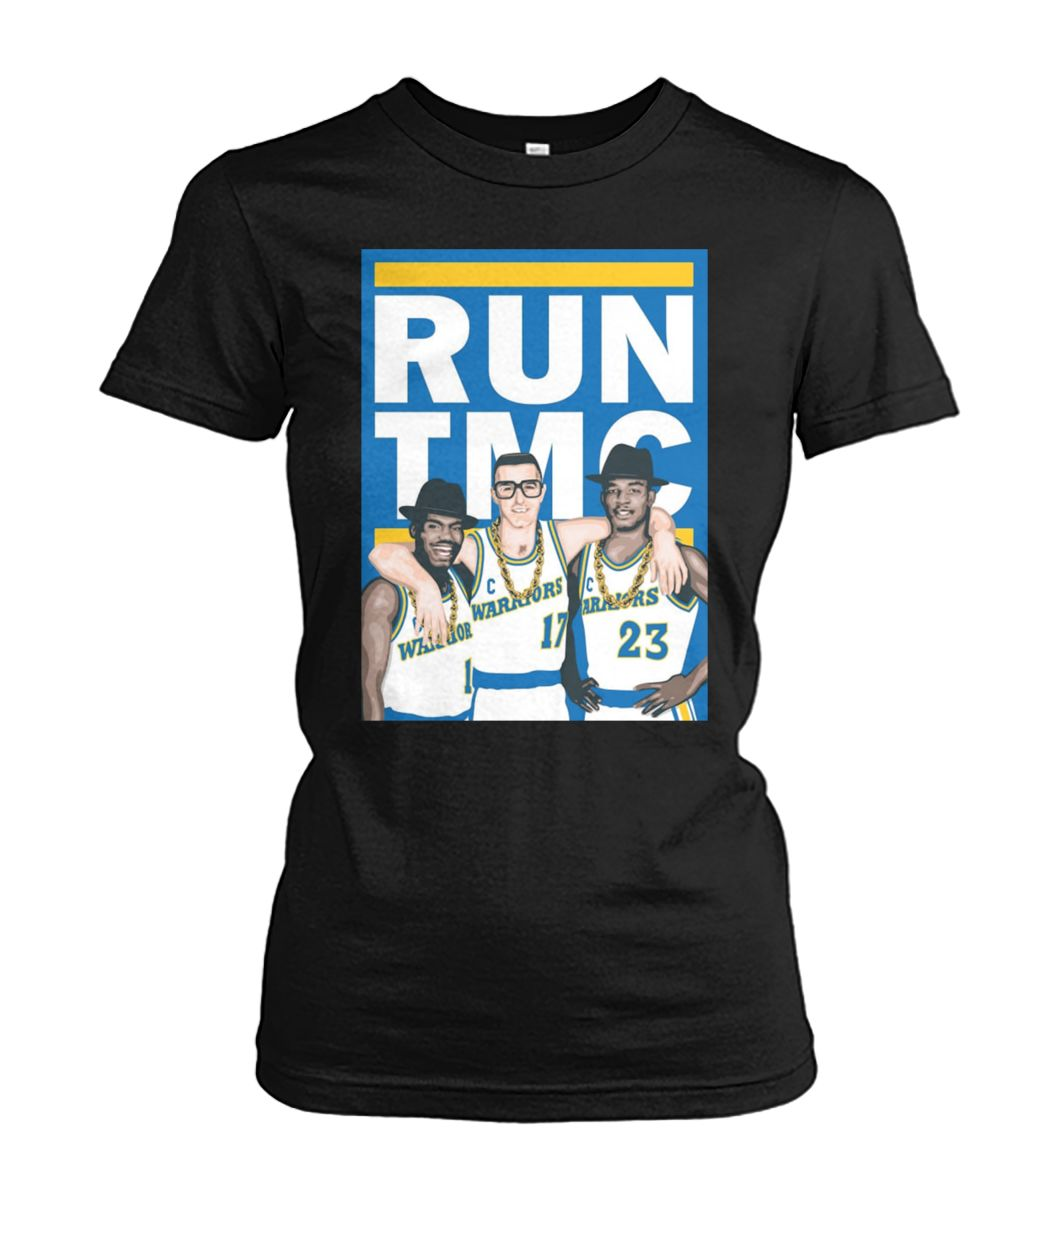 Golden state warriors RUN TMC women's crew tee